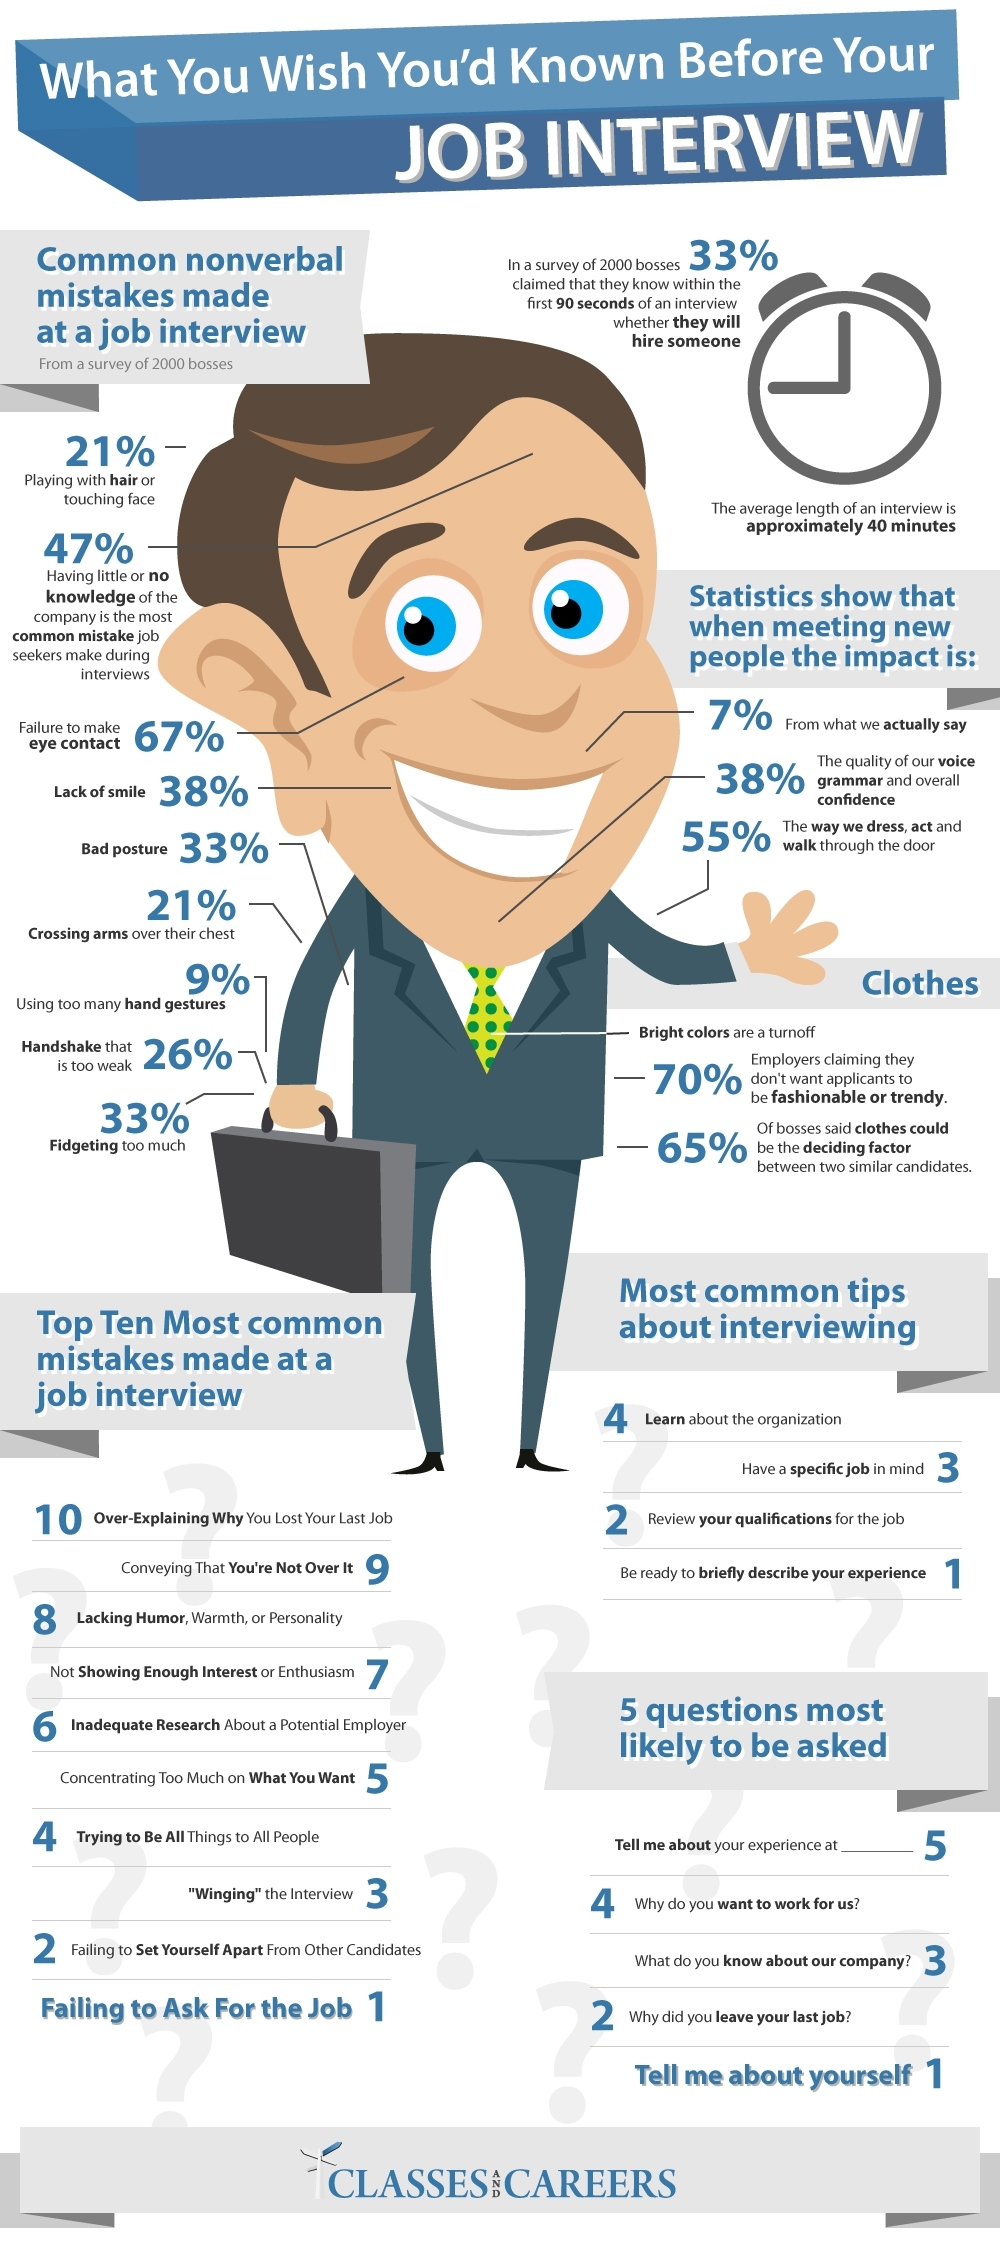 know-before job-interview